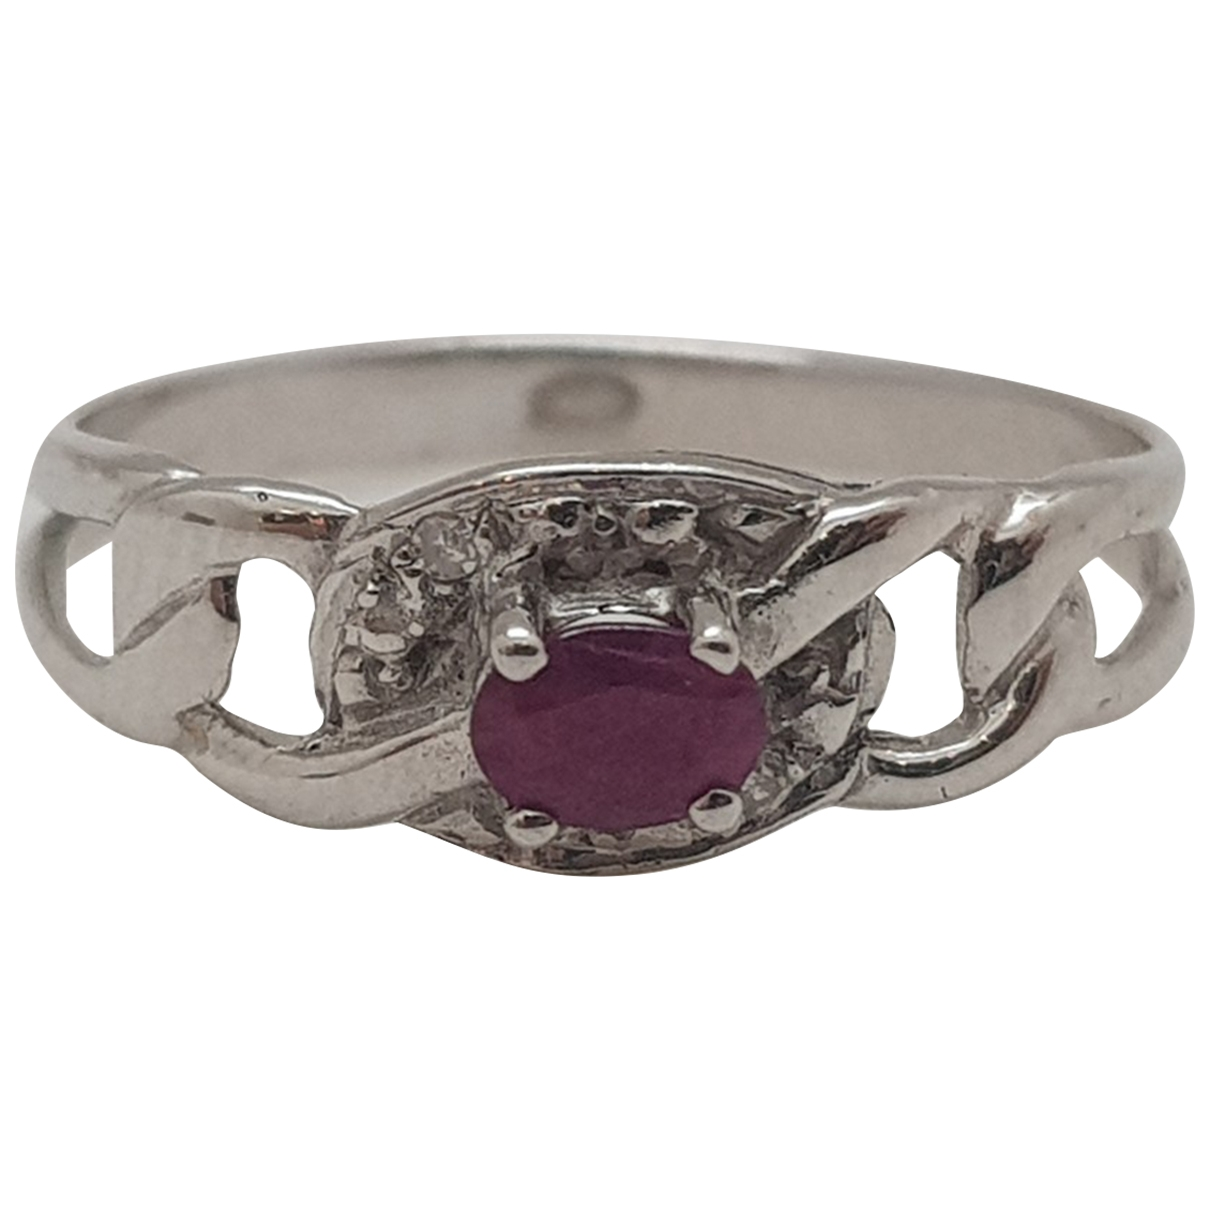 Non Signe / Unsigned Rubis Ring in  Weiss Weissgold